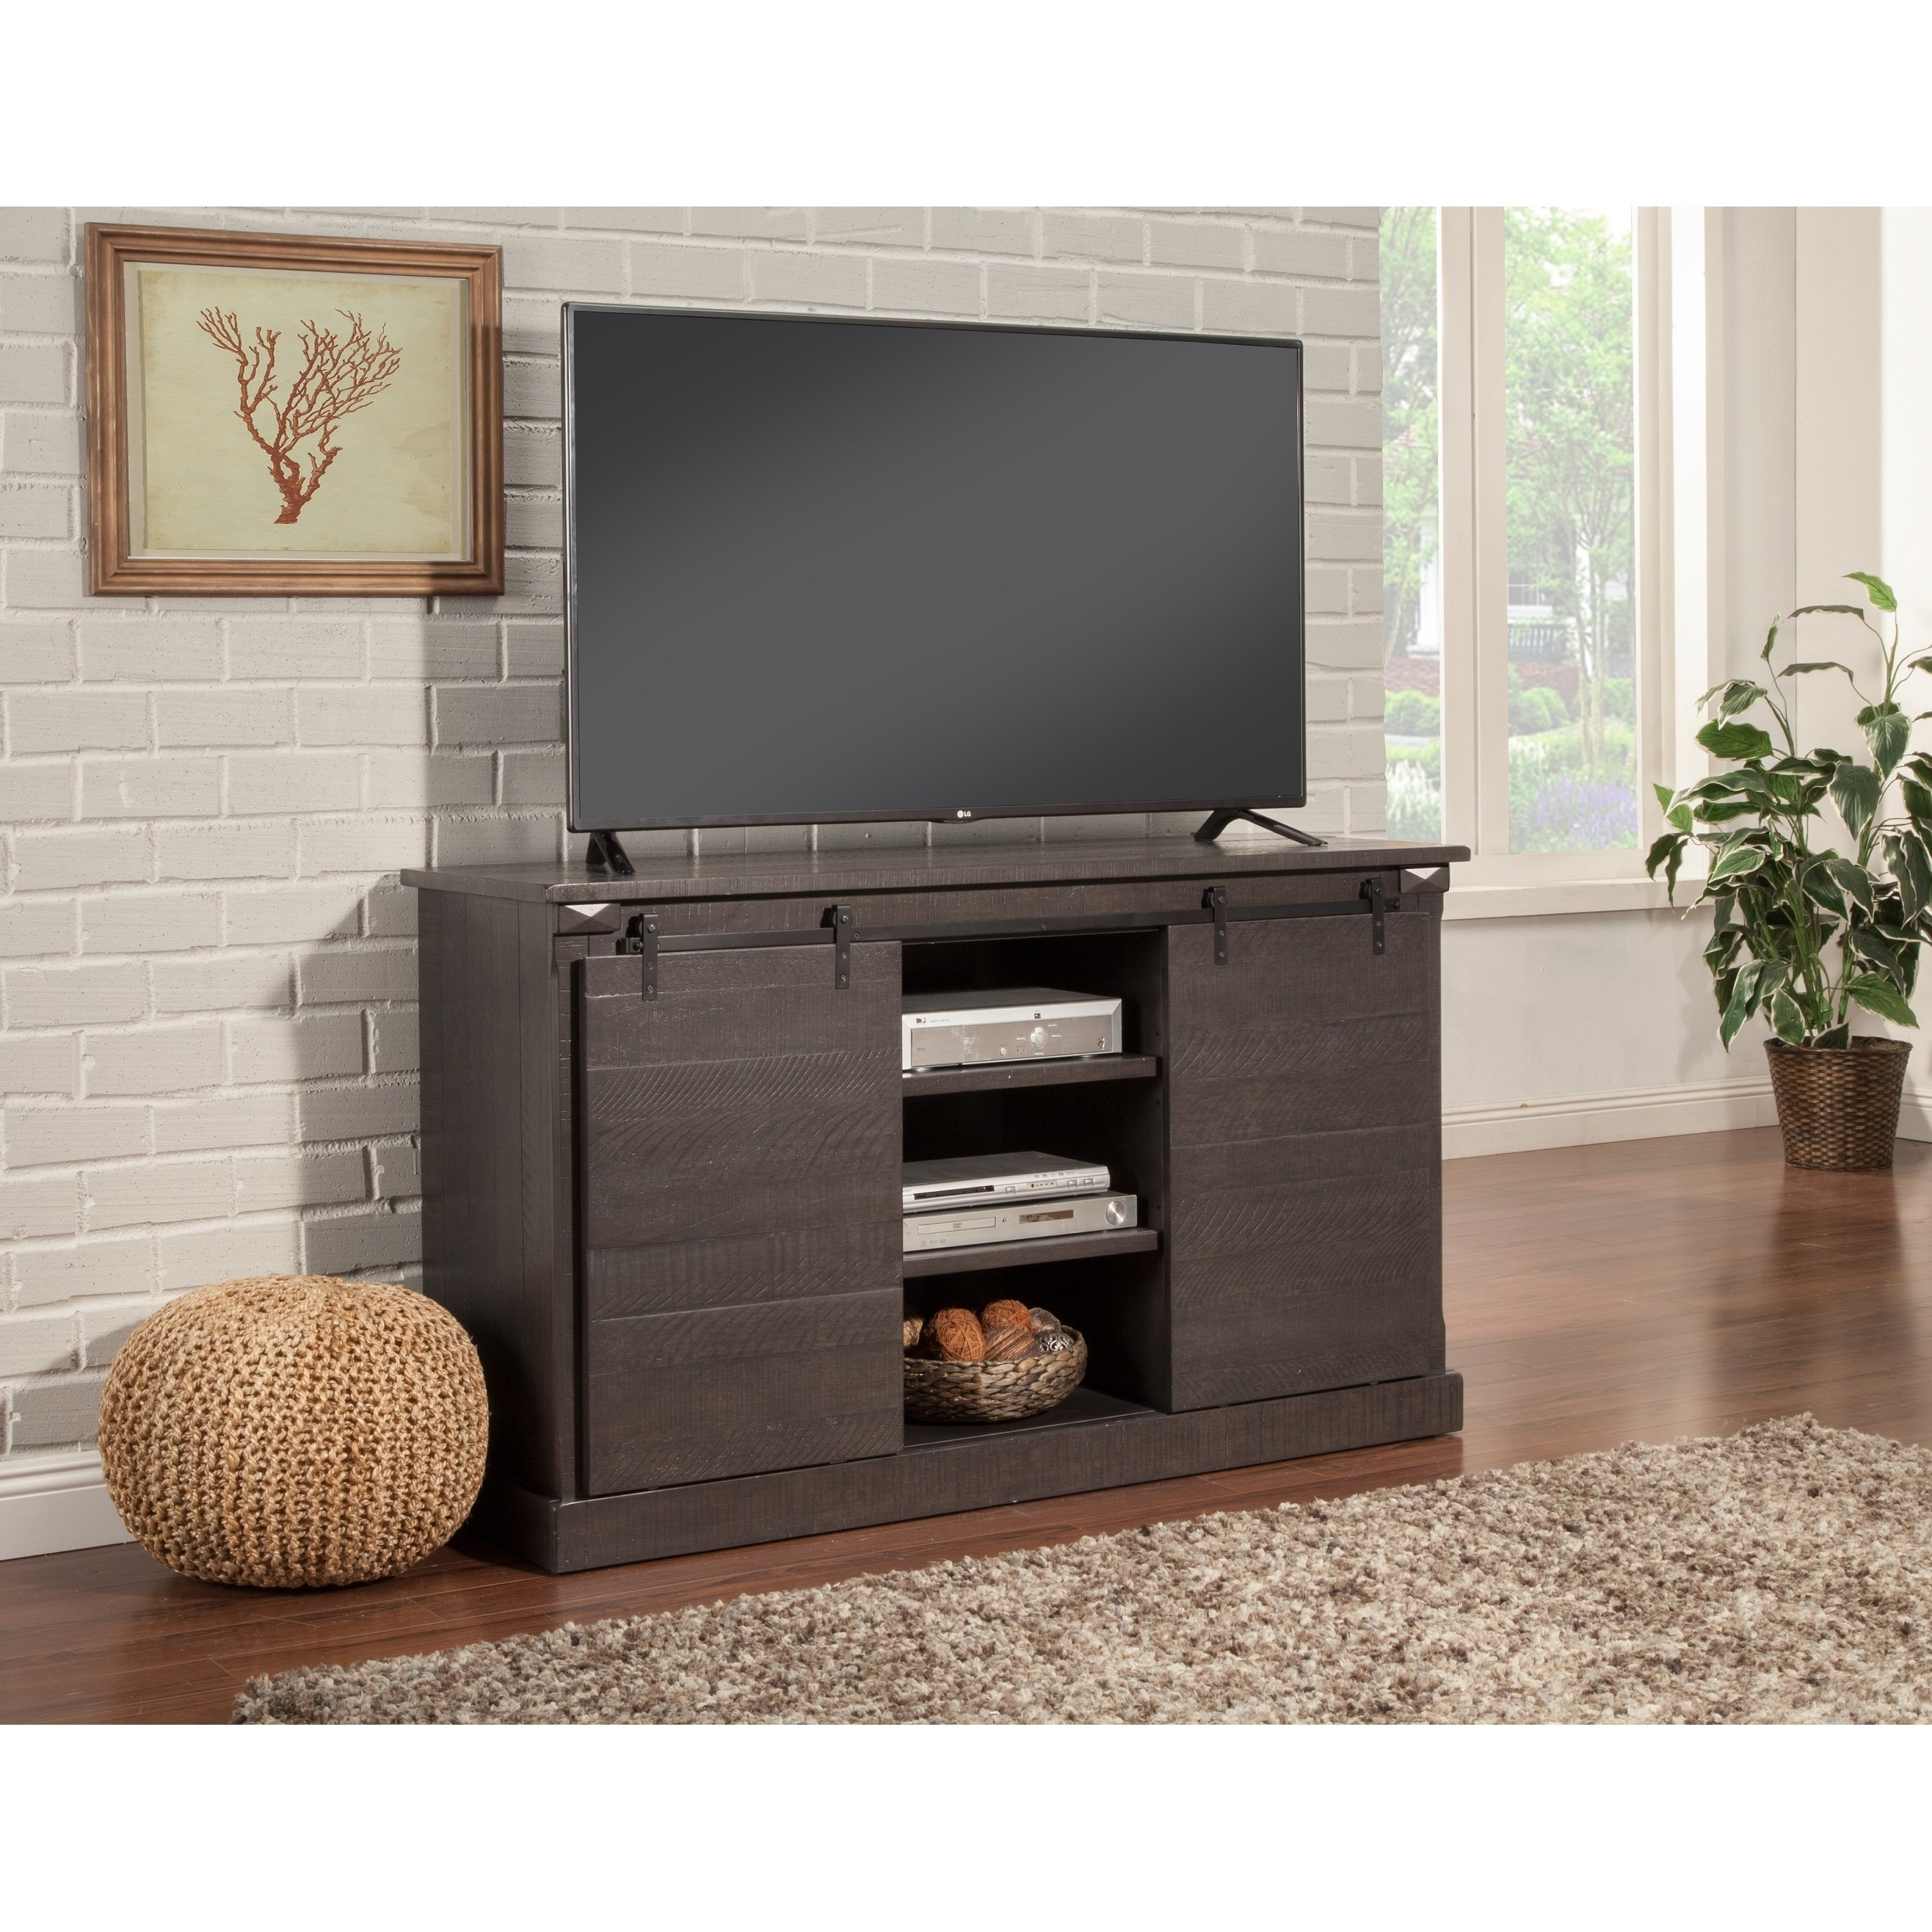 Buy Grey, 42 - 60 Inches Tv Stands & Entertainment Centers Online At inside Rowan 64 Inch Tv Stands (Image 6 of 30)